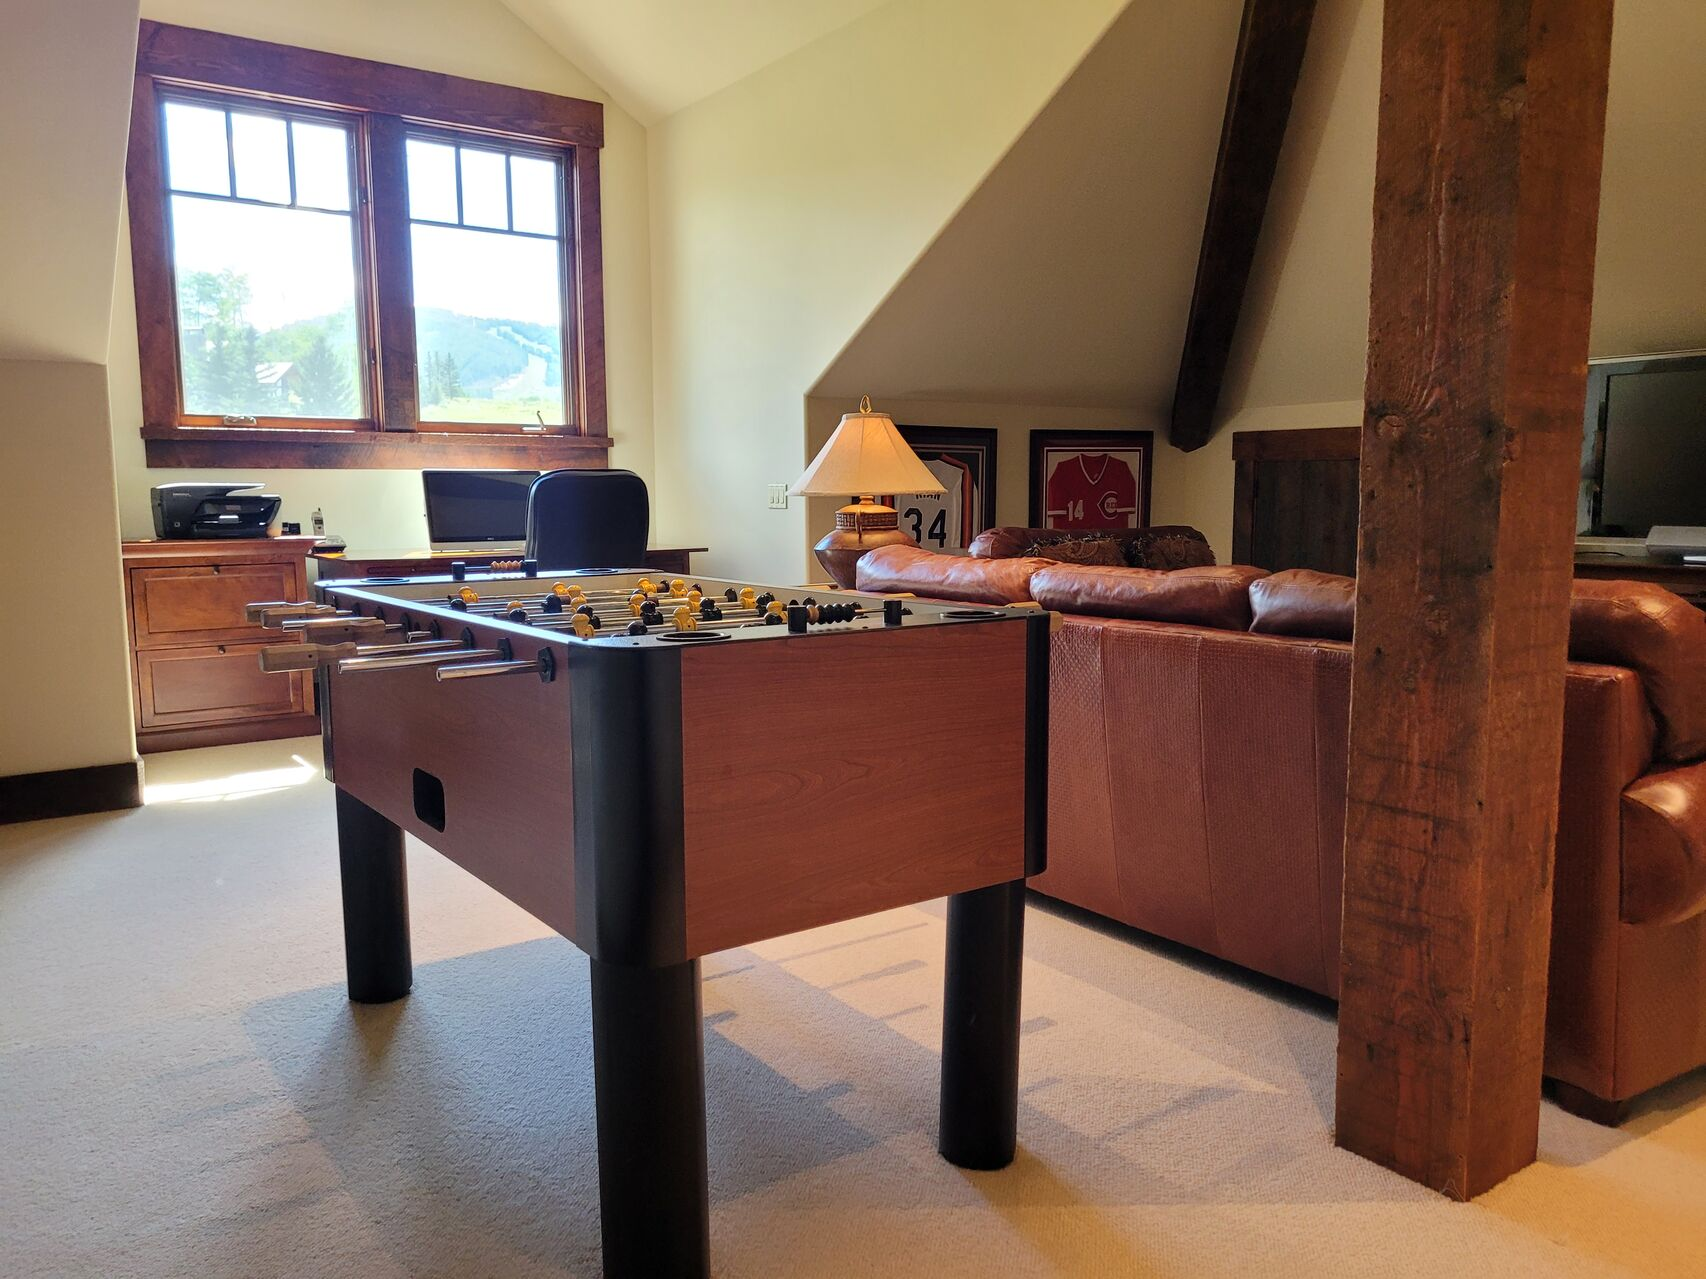 Game room with Foosball table and leather couches